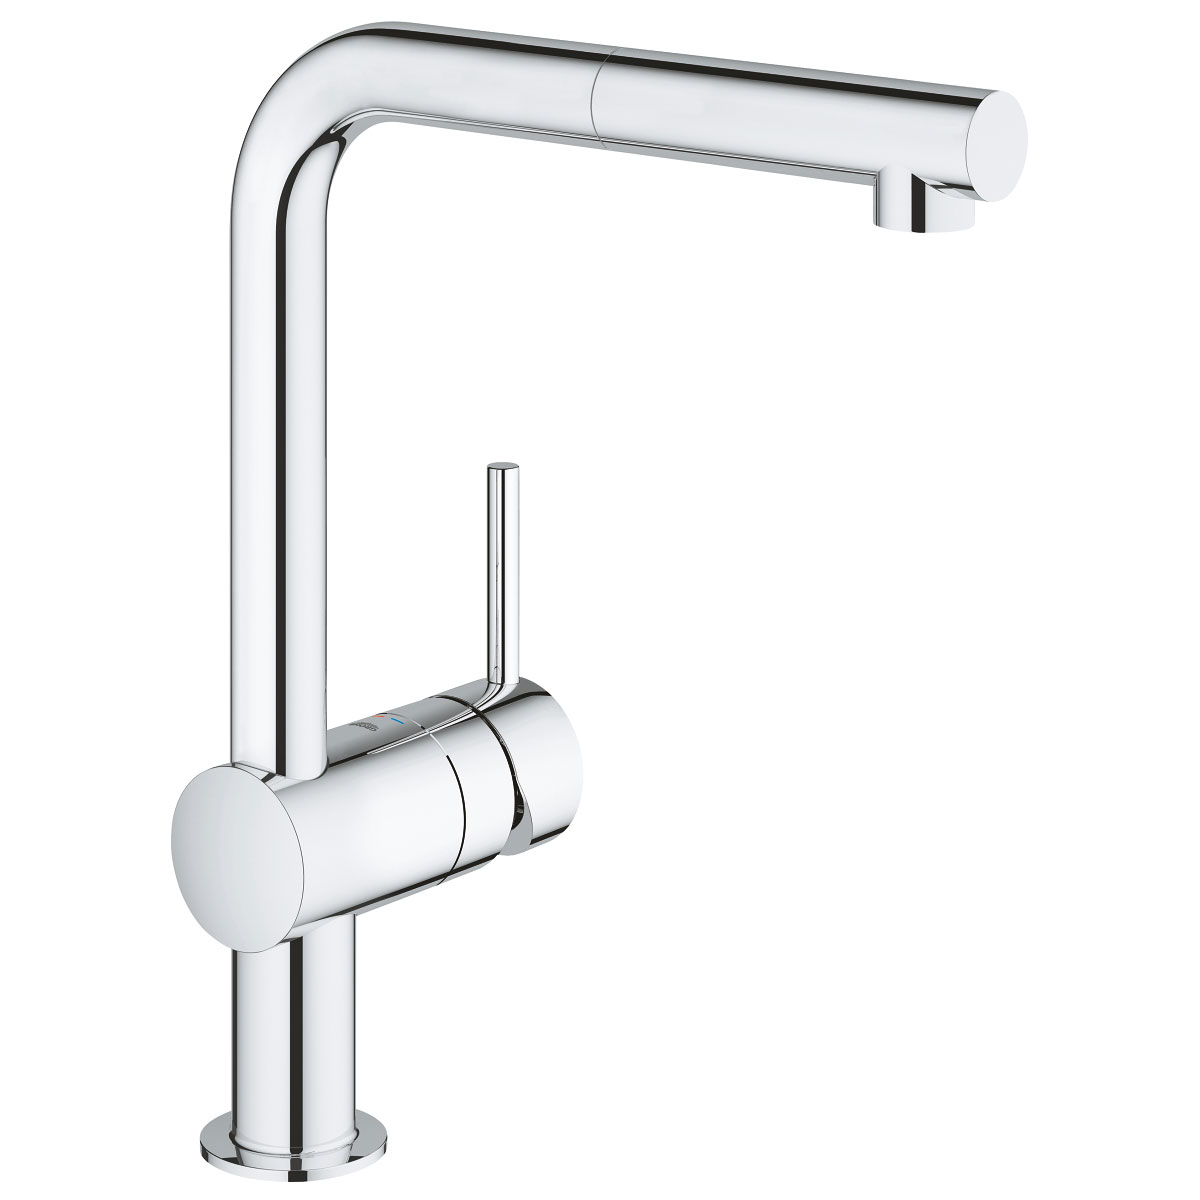 Grohe Minta Mono Kitchen Sink Mixer Tap, Pull-Out L-Spout, Single Handle, Chrome-0